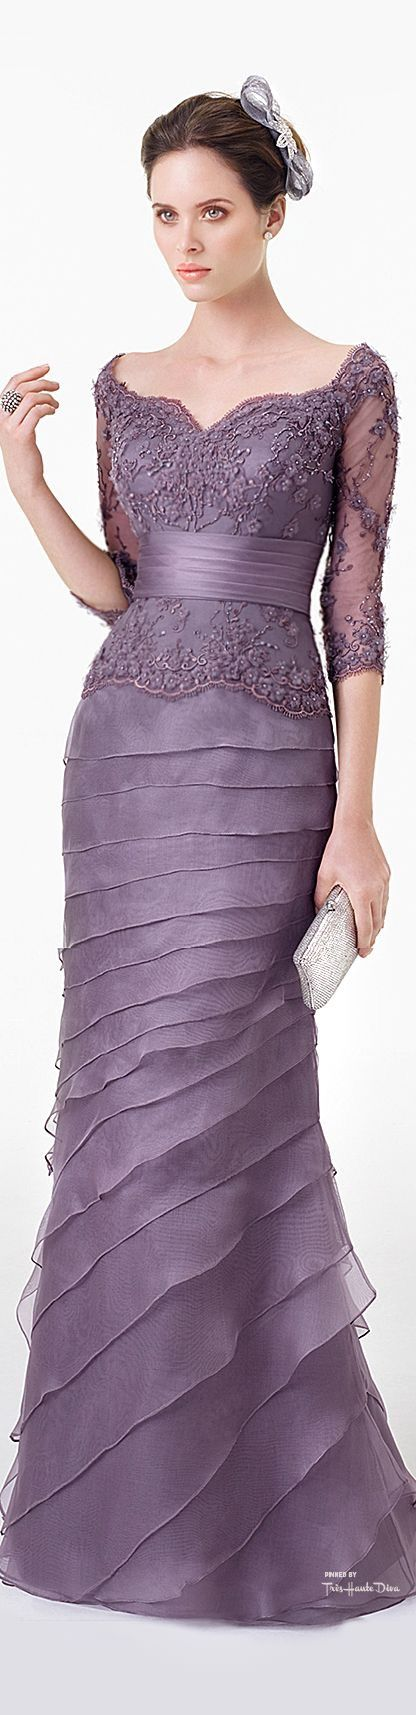 Mother of the Bride or Groom gown - beautiful in violet